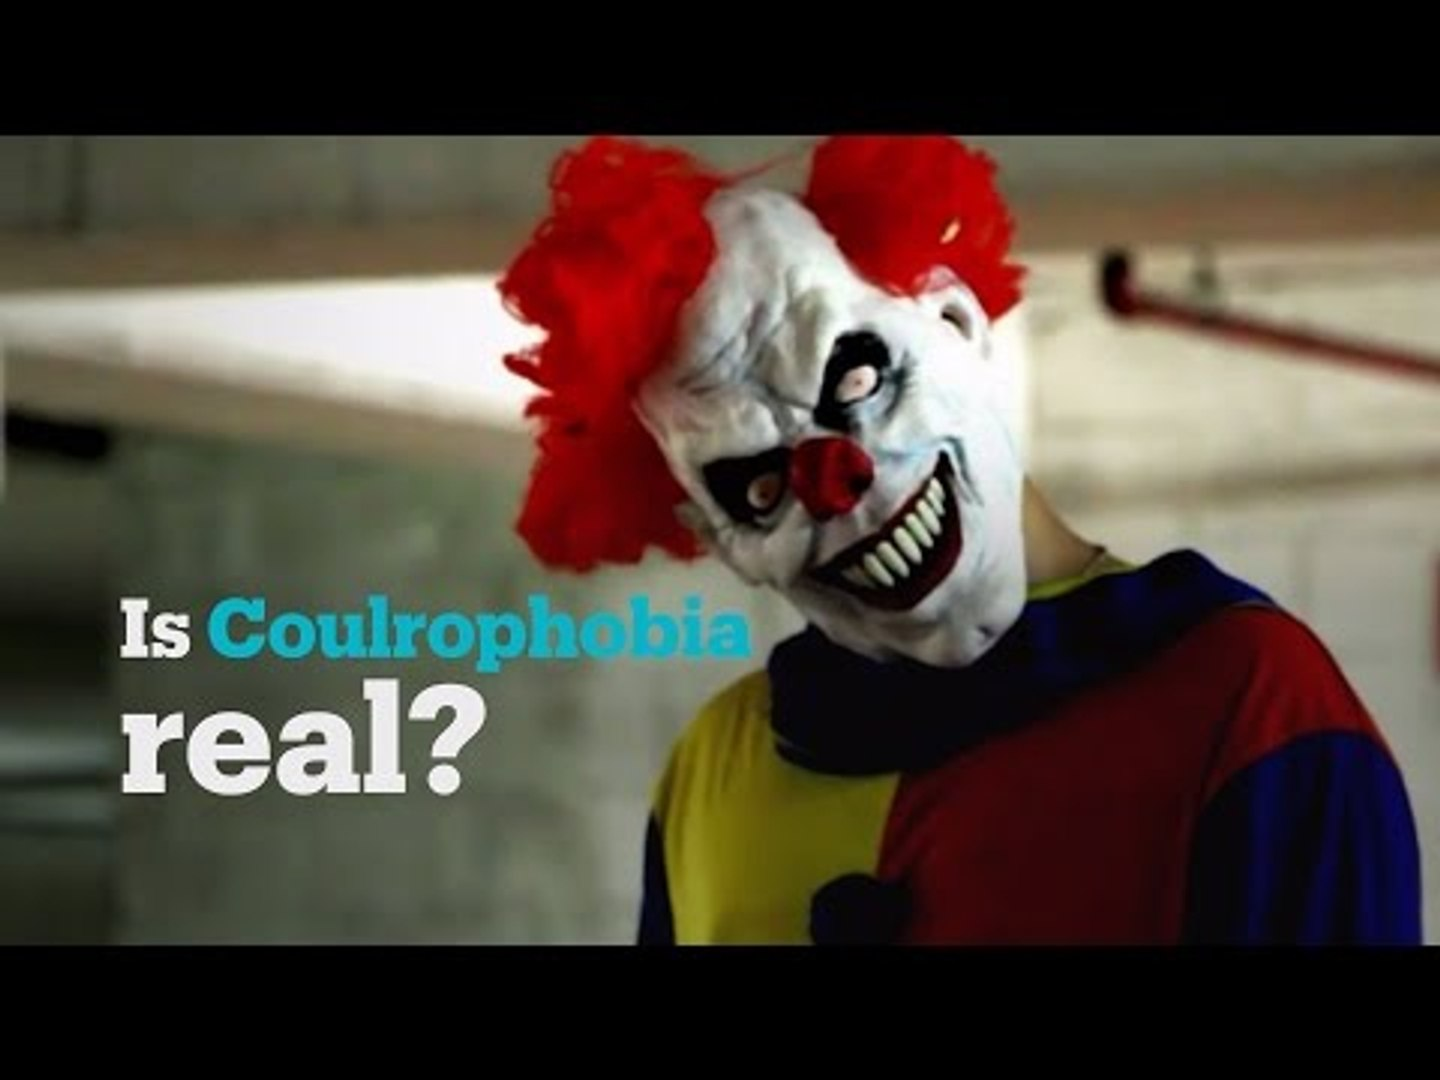 Is fear of clowns a real phobia?